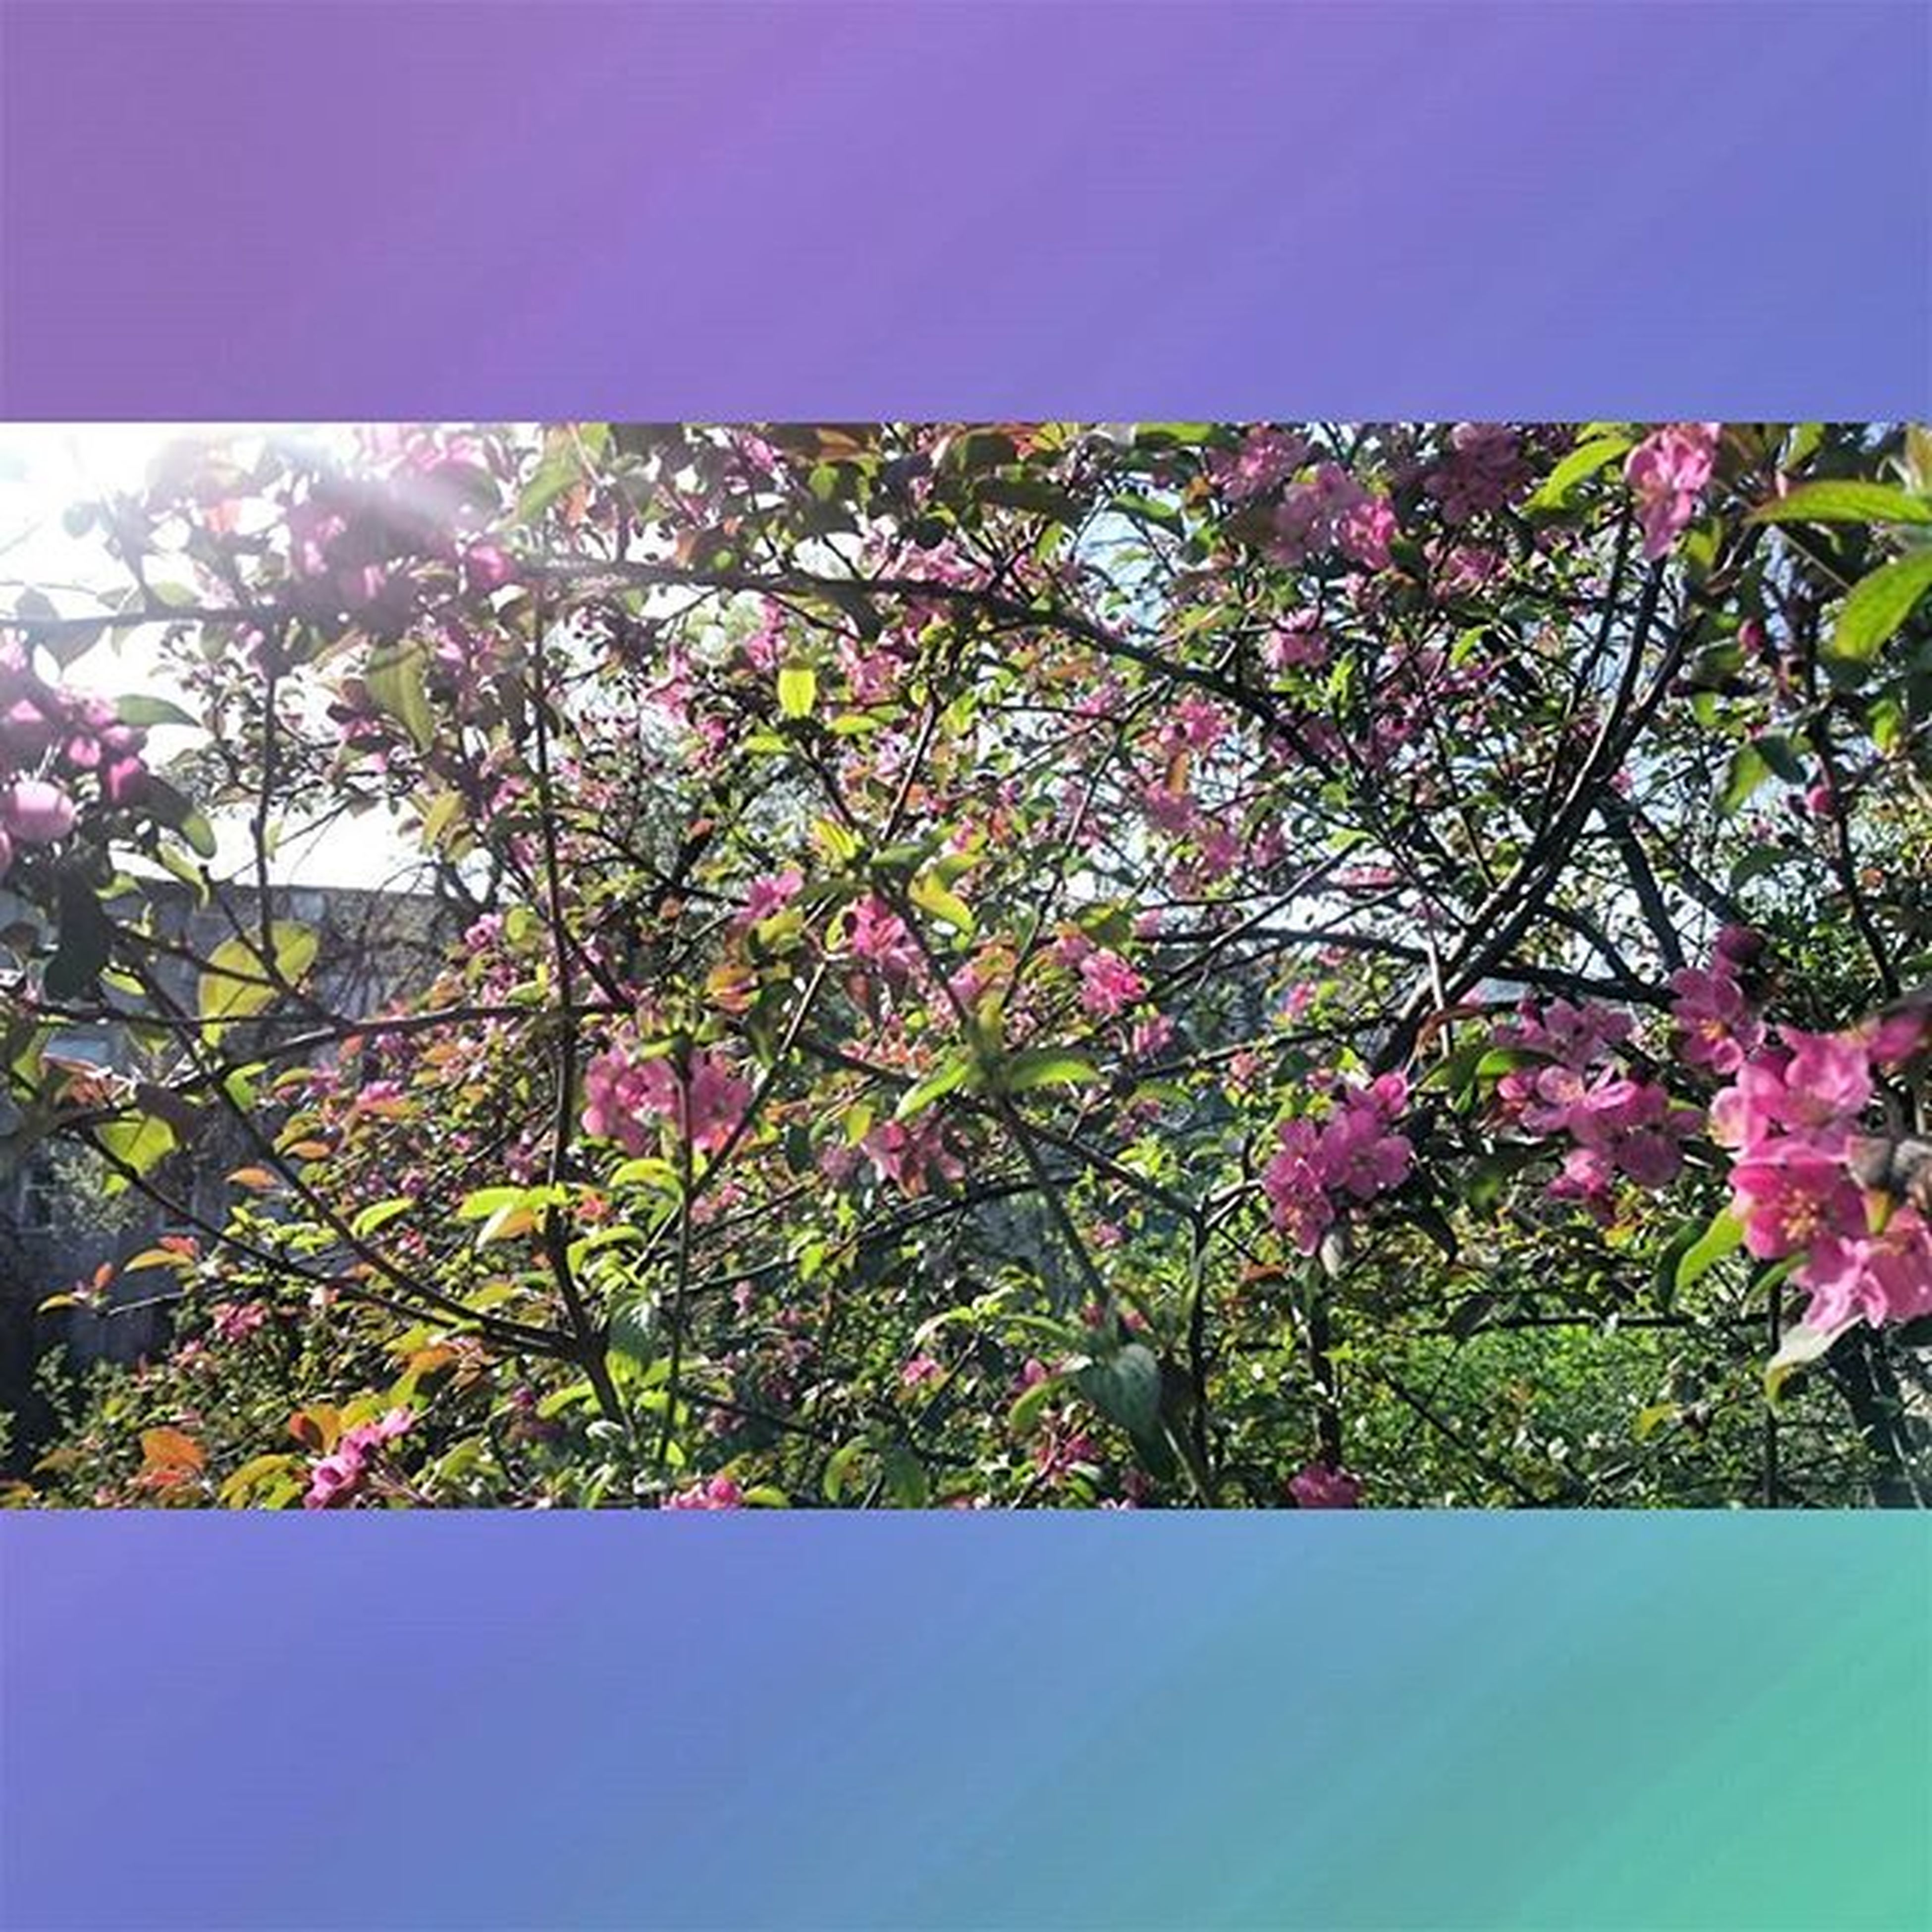 flower, growth, freshness, beauty in nature, pink color, tree, fragility, nature, branch, clear sky, blossom, low angle view, blooming, in bloom, sky, pink, plant, day, leaf, springtime